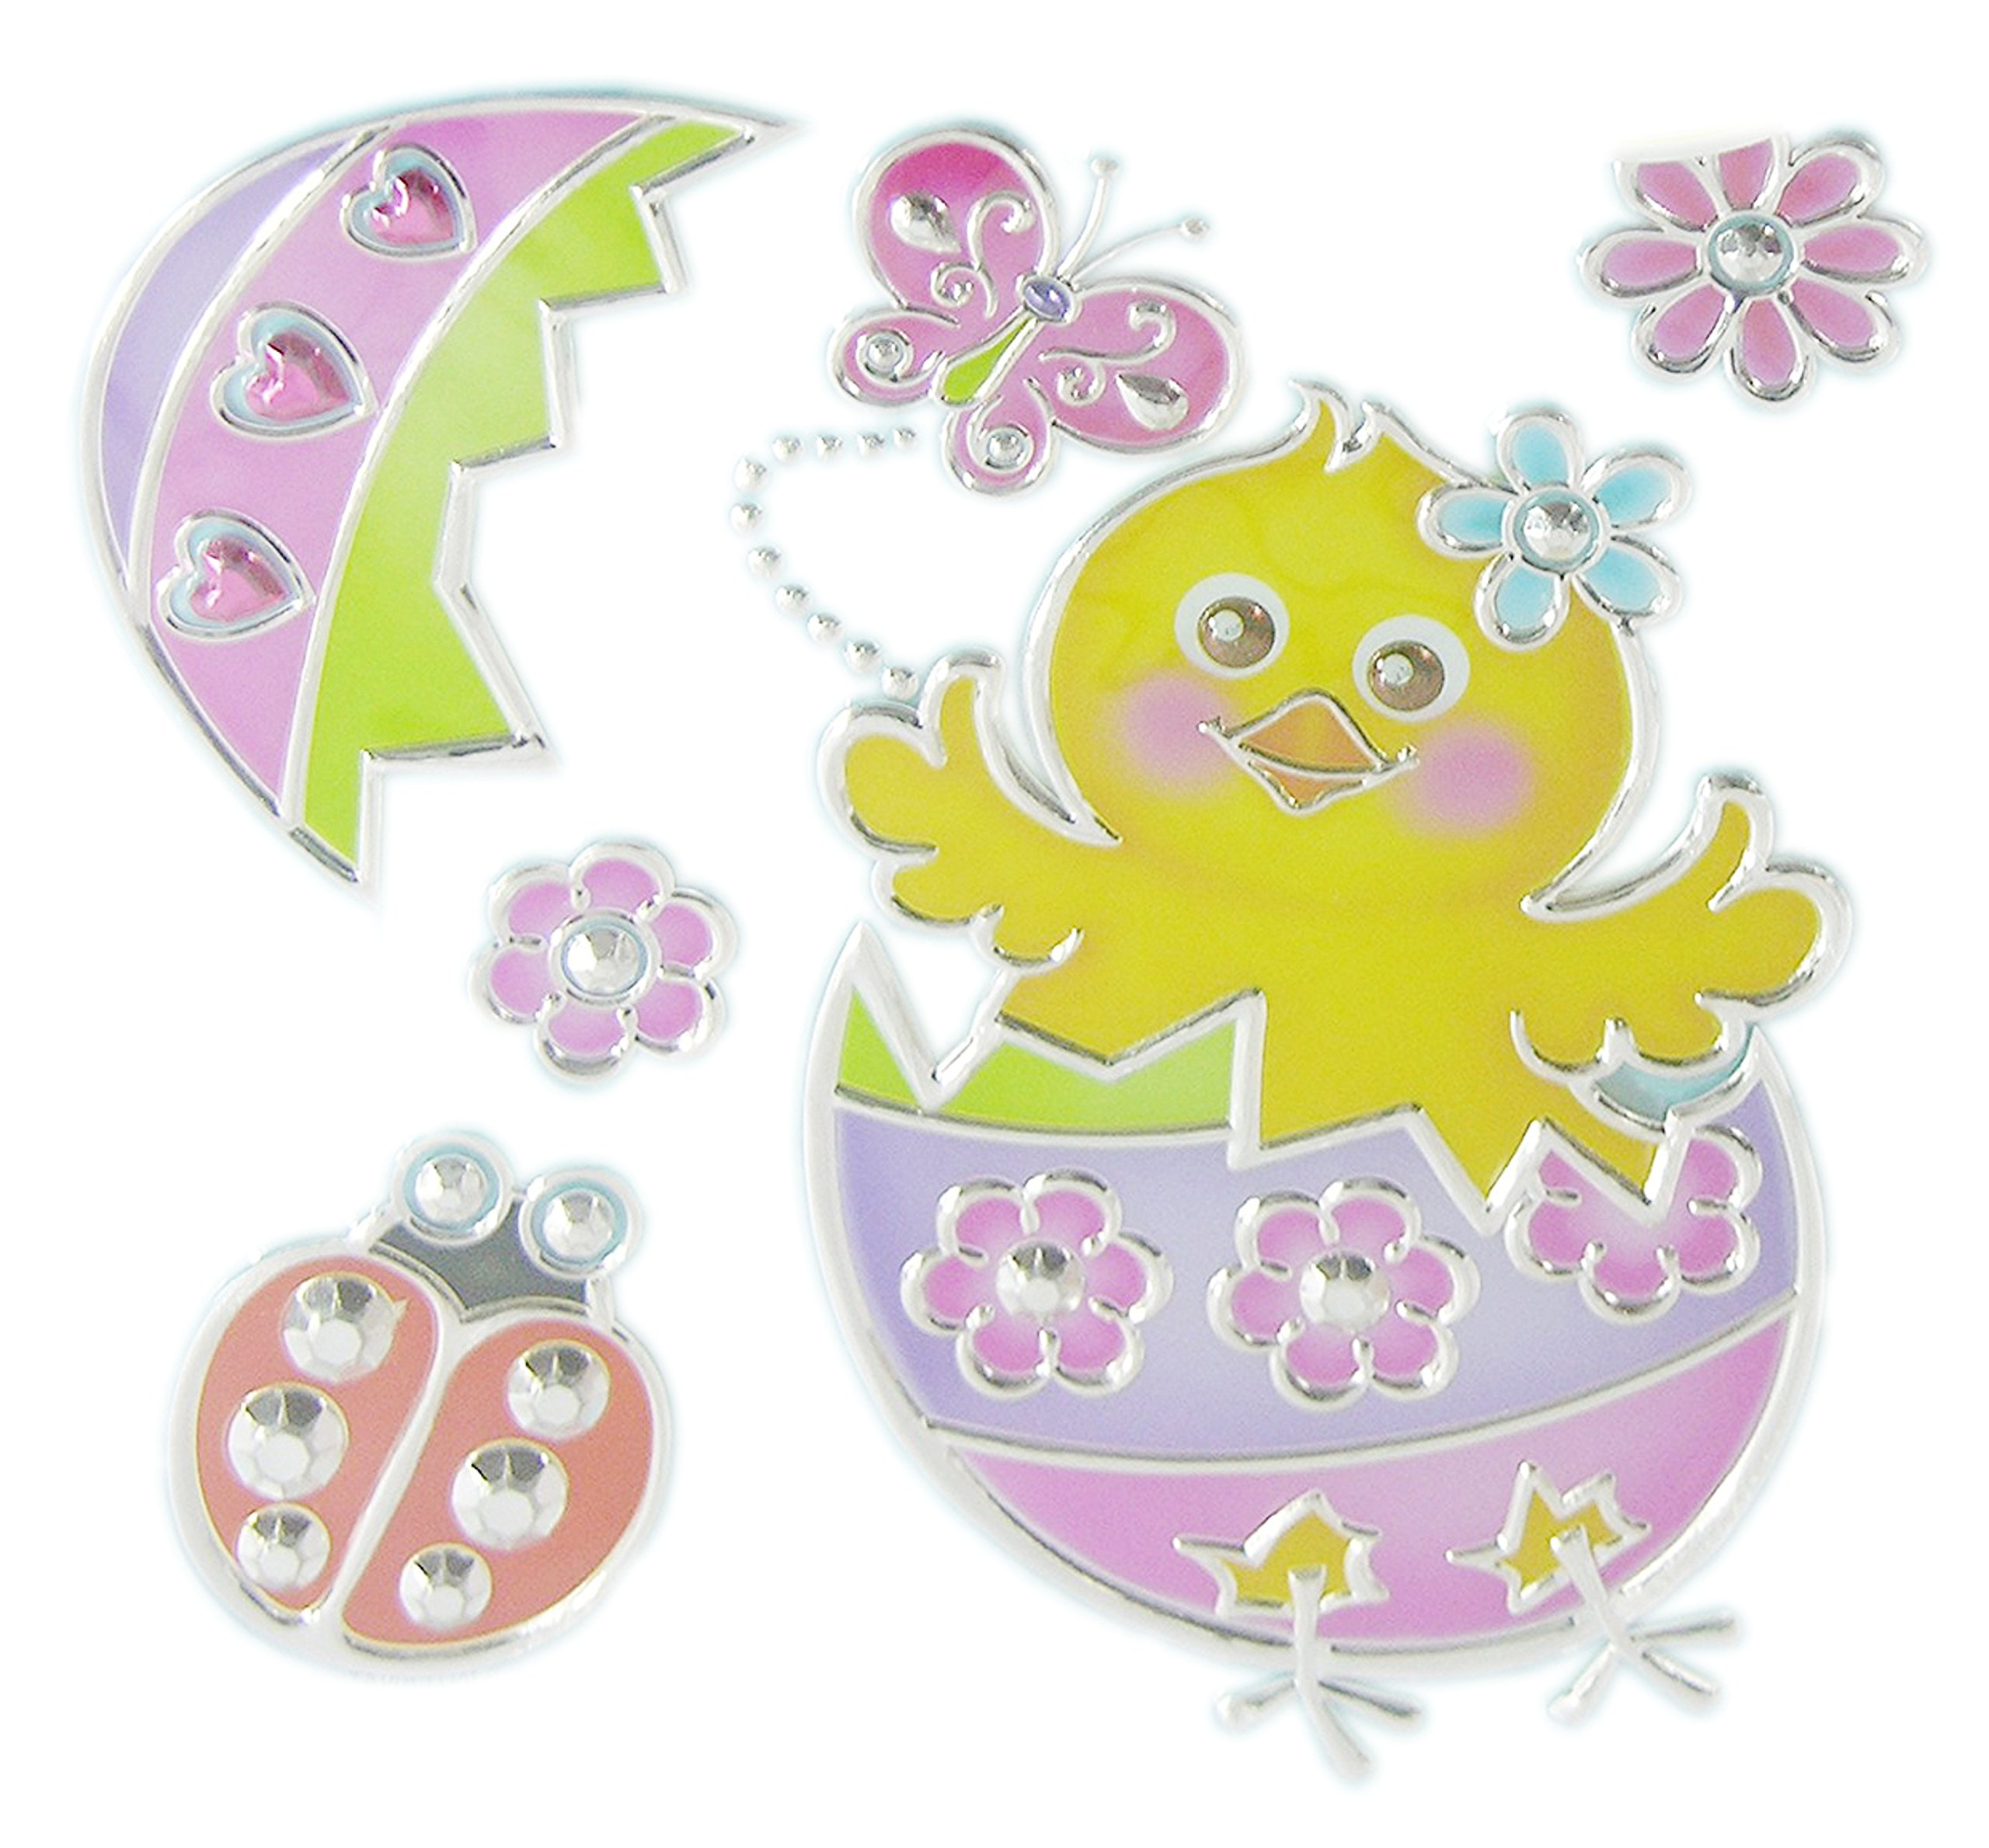 Easter Spring Window Decoration Bundle - Adorable Bunny Ducky and Chick Sun Catcher Window Decal Stickers (2-Pack Bunny & Chick) by EasterTime (Image #3)